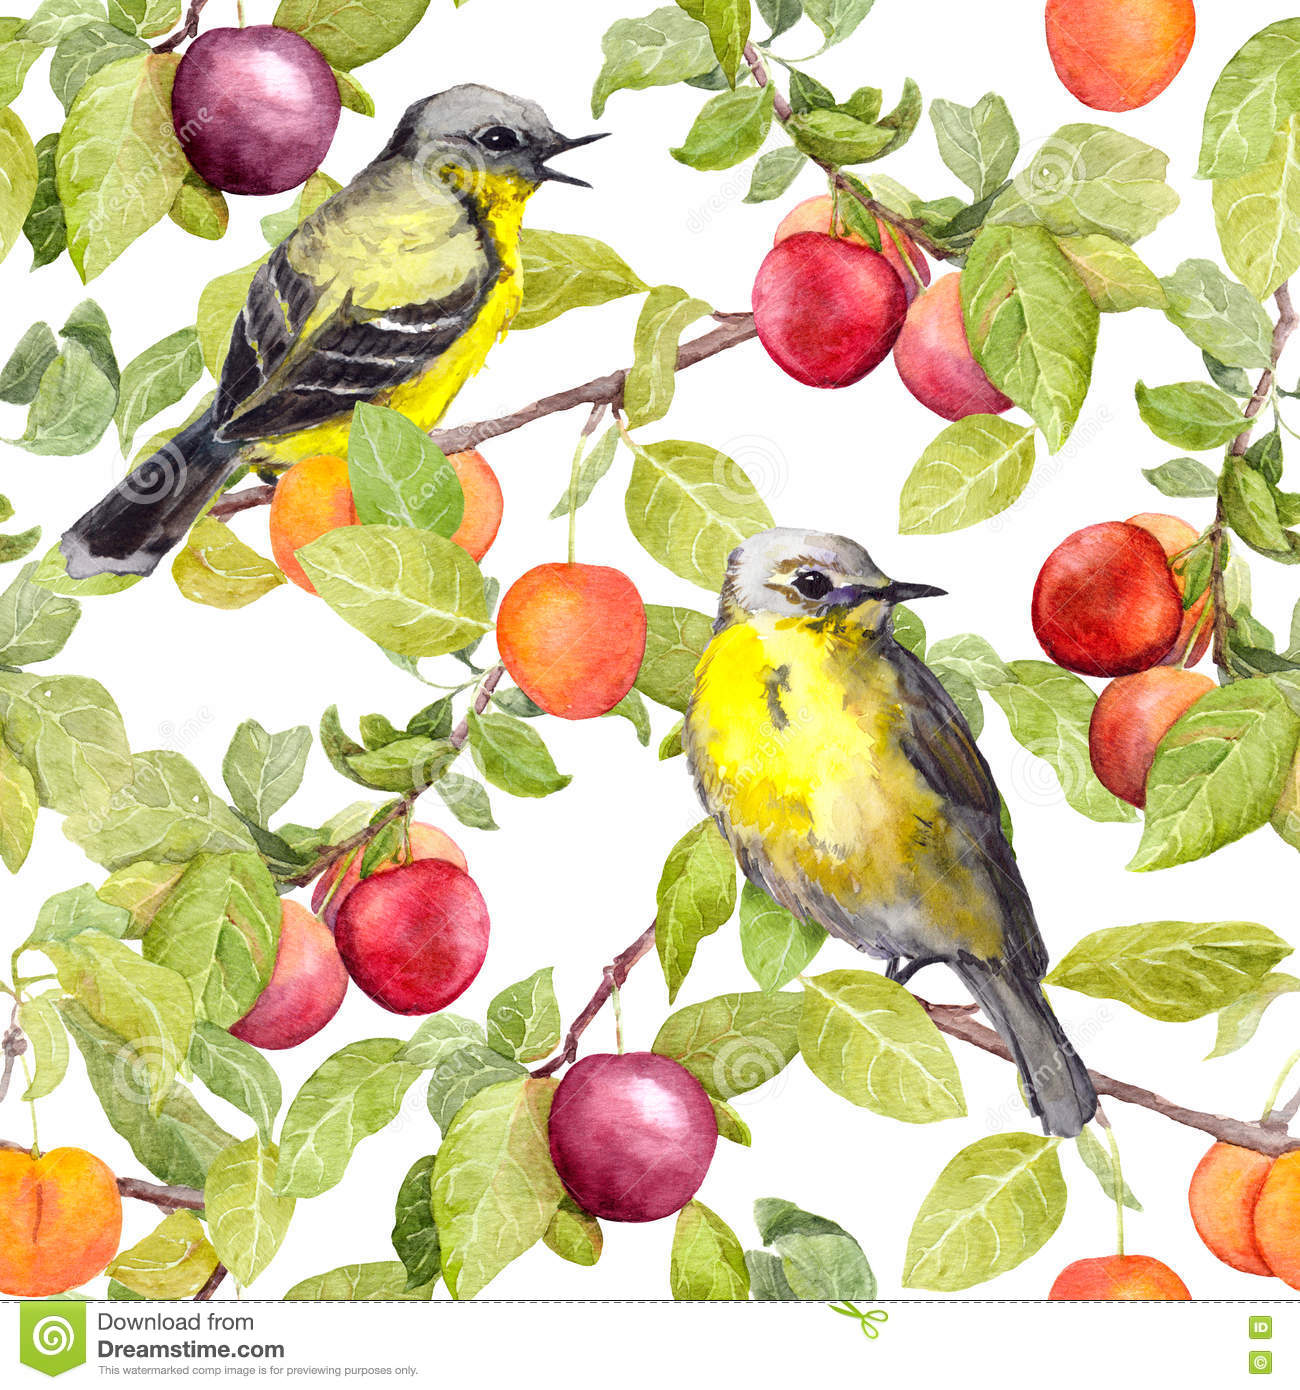 Fruits, birds - garden with plum, cherry, apples. Seamless pattern. Watercolor